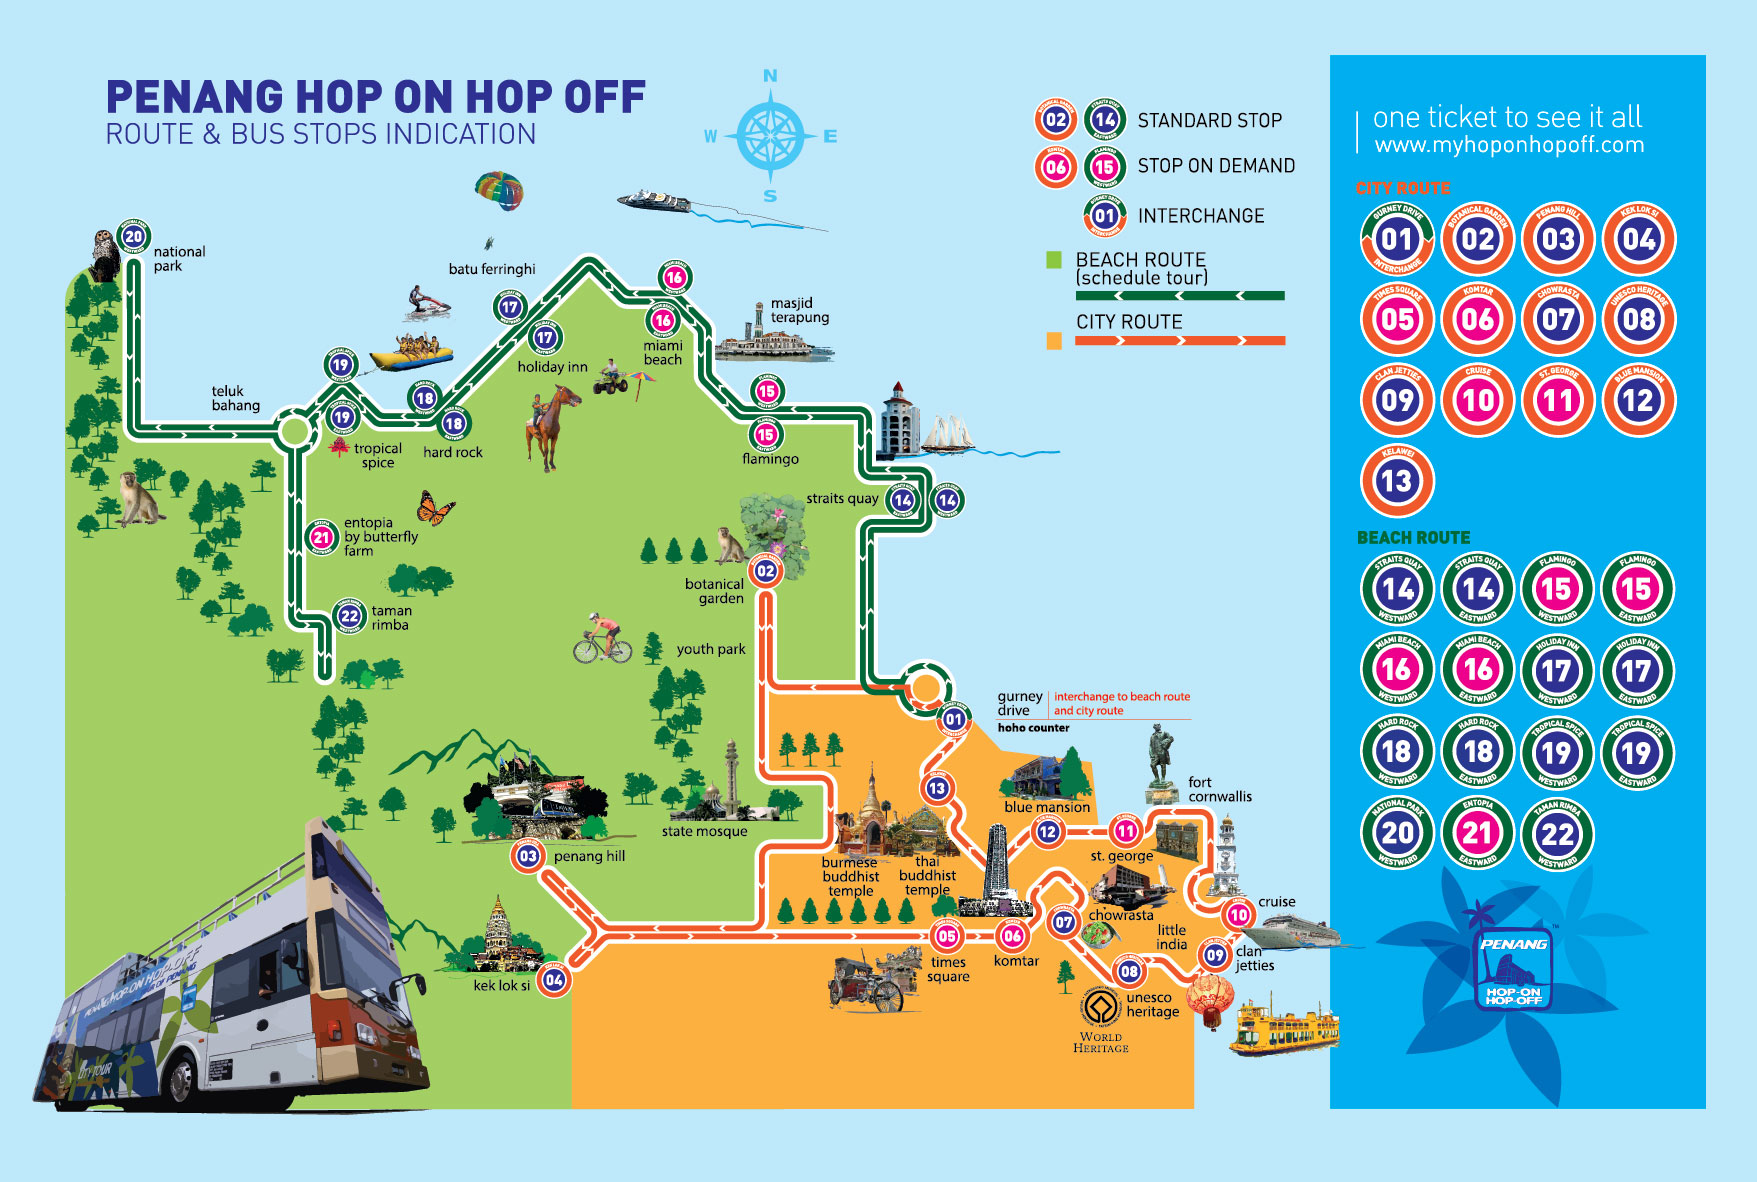 Penang Hop-on Hop-off Route and Bus Stop map